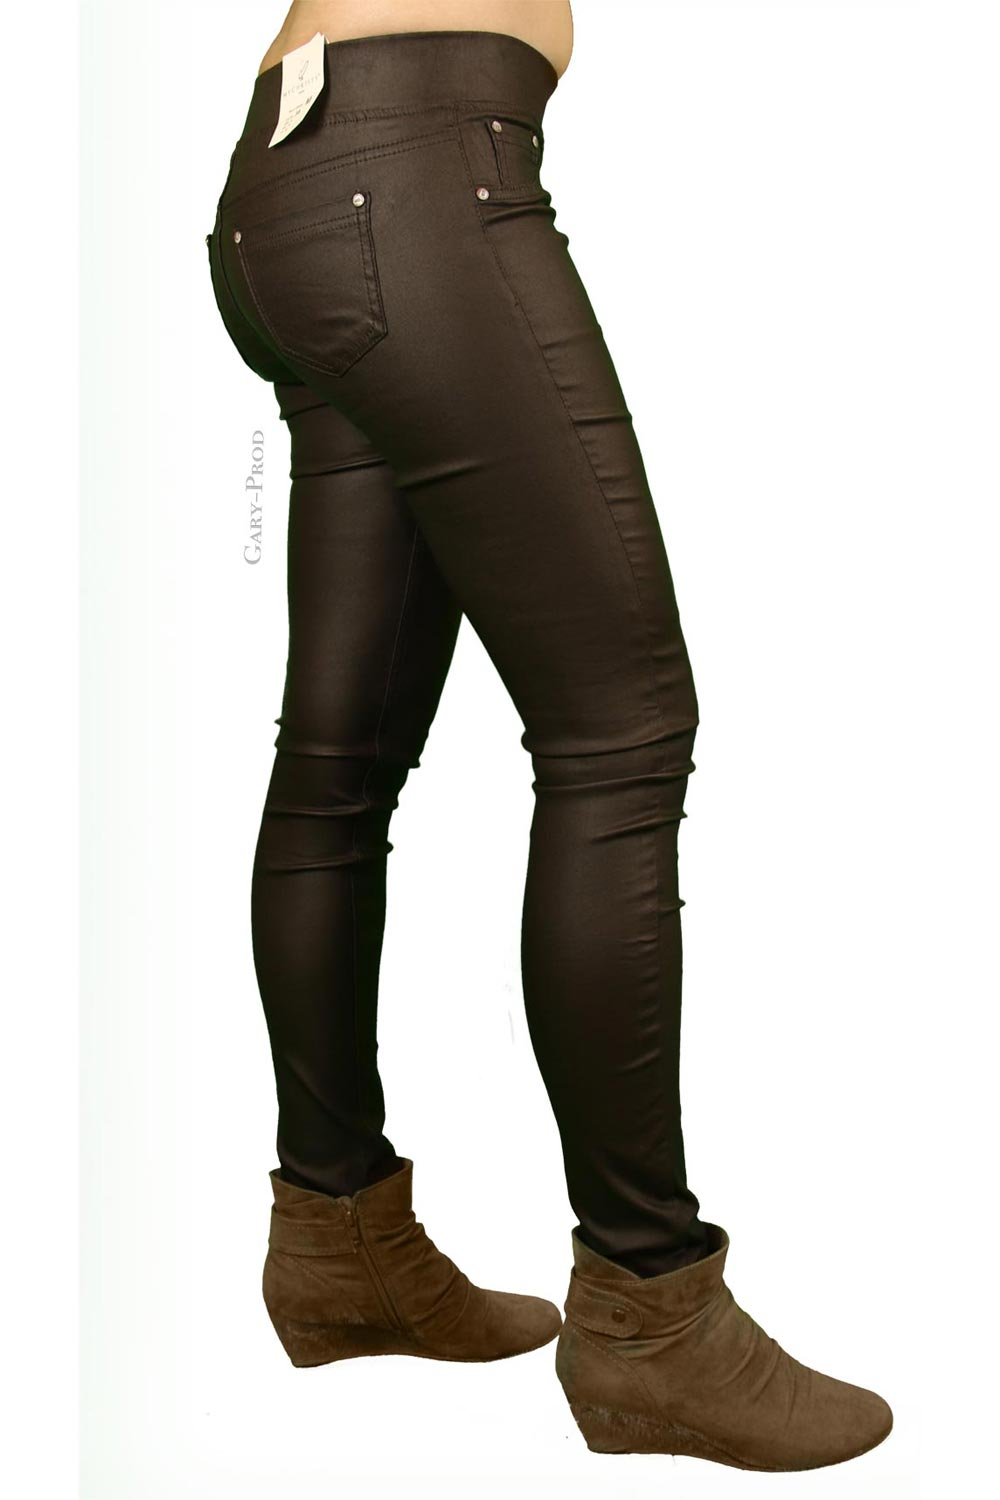 Pantalon huilé chocolat extra slim 'MY CHRISTY'